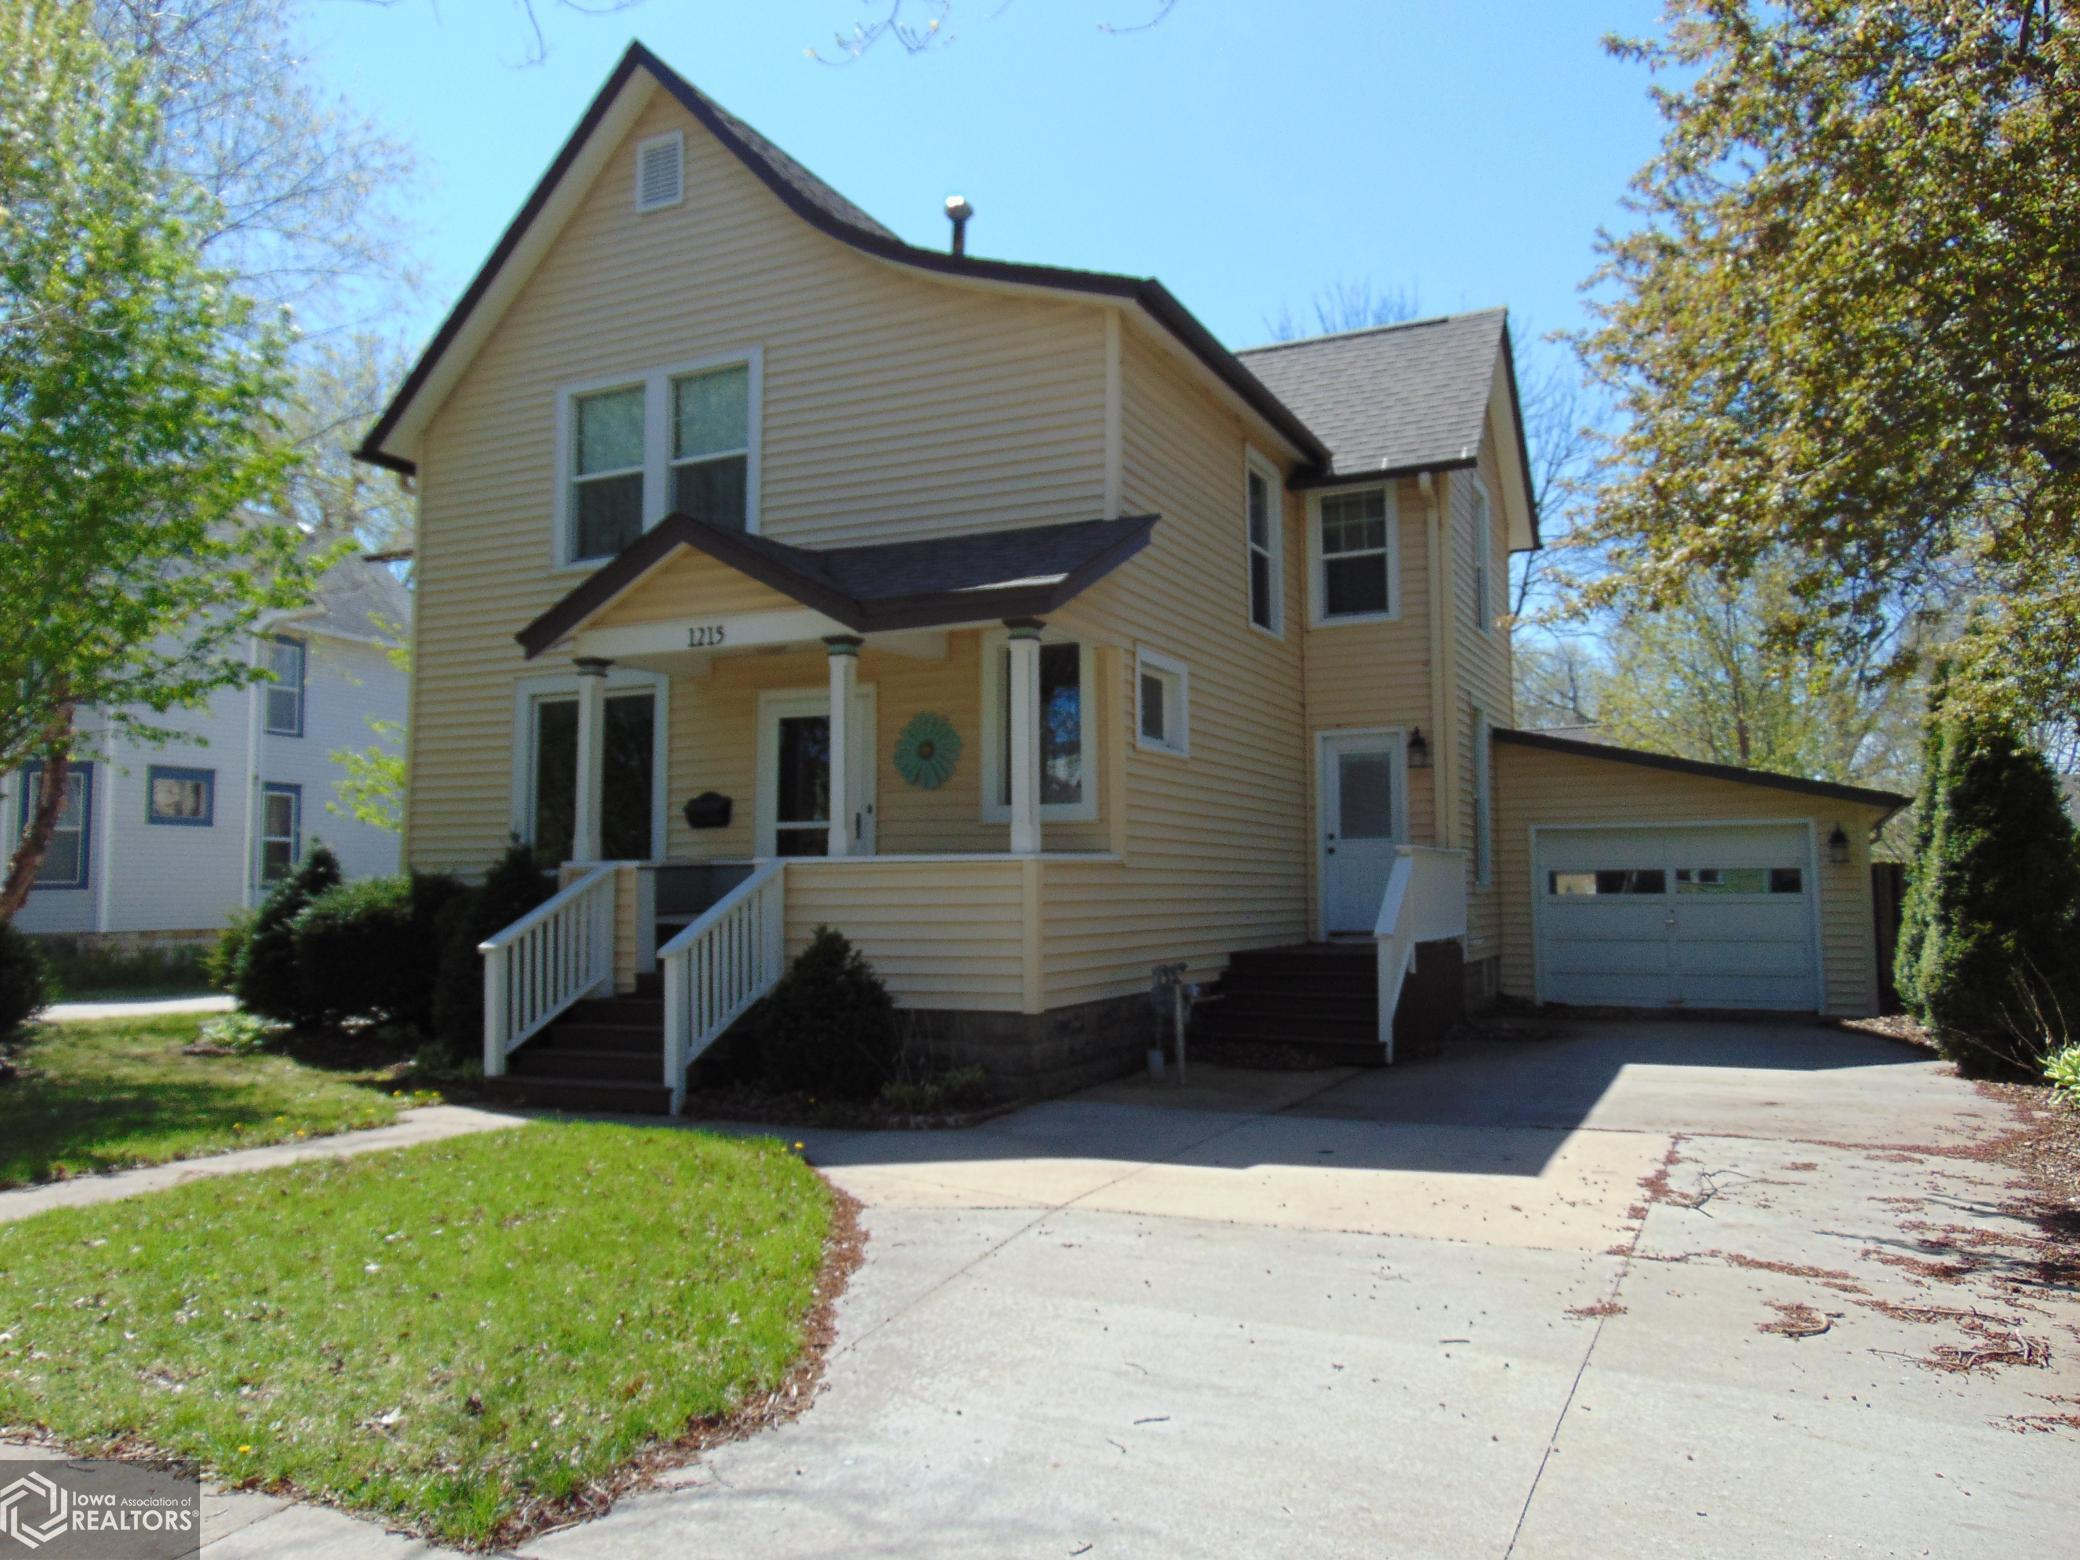 1215 Broad, Grinnell, Iowa 50112-8351, 5 Bedrooms Bedrooms, ,Single Family,For Sale,Broad,5716585